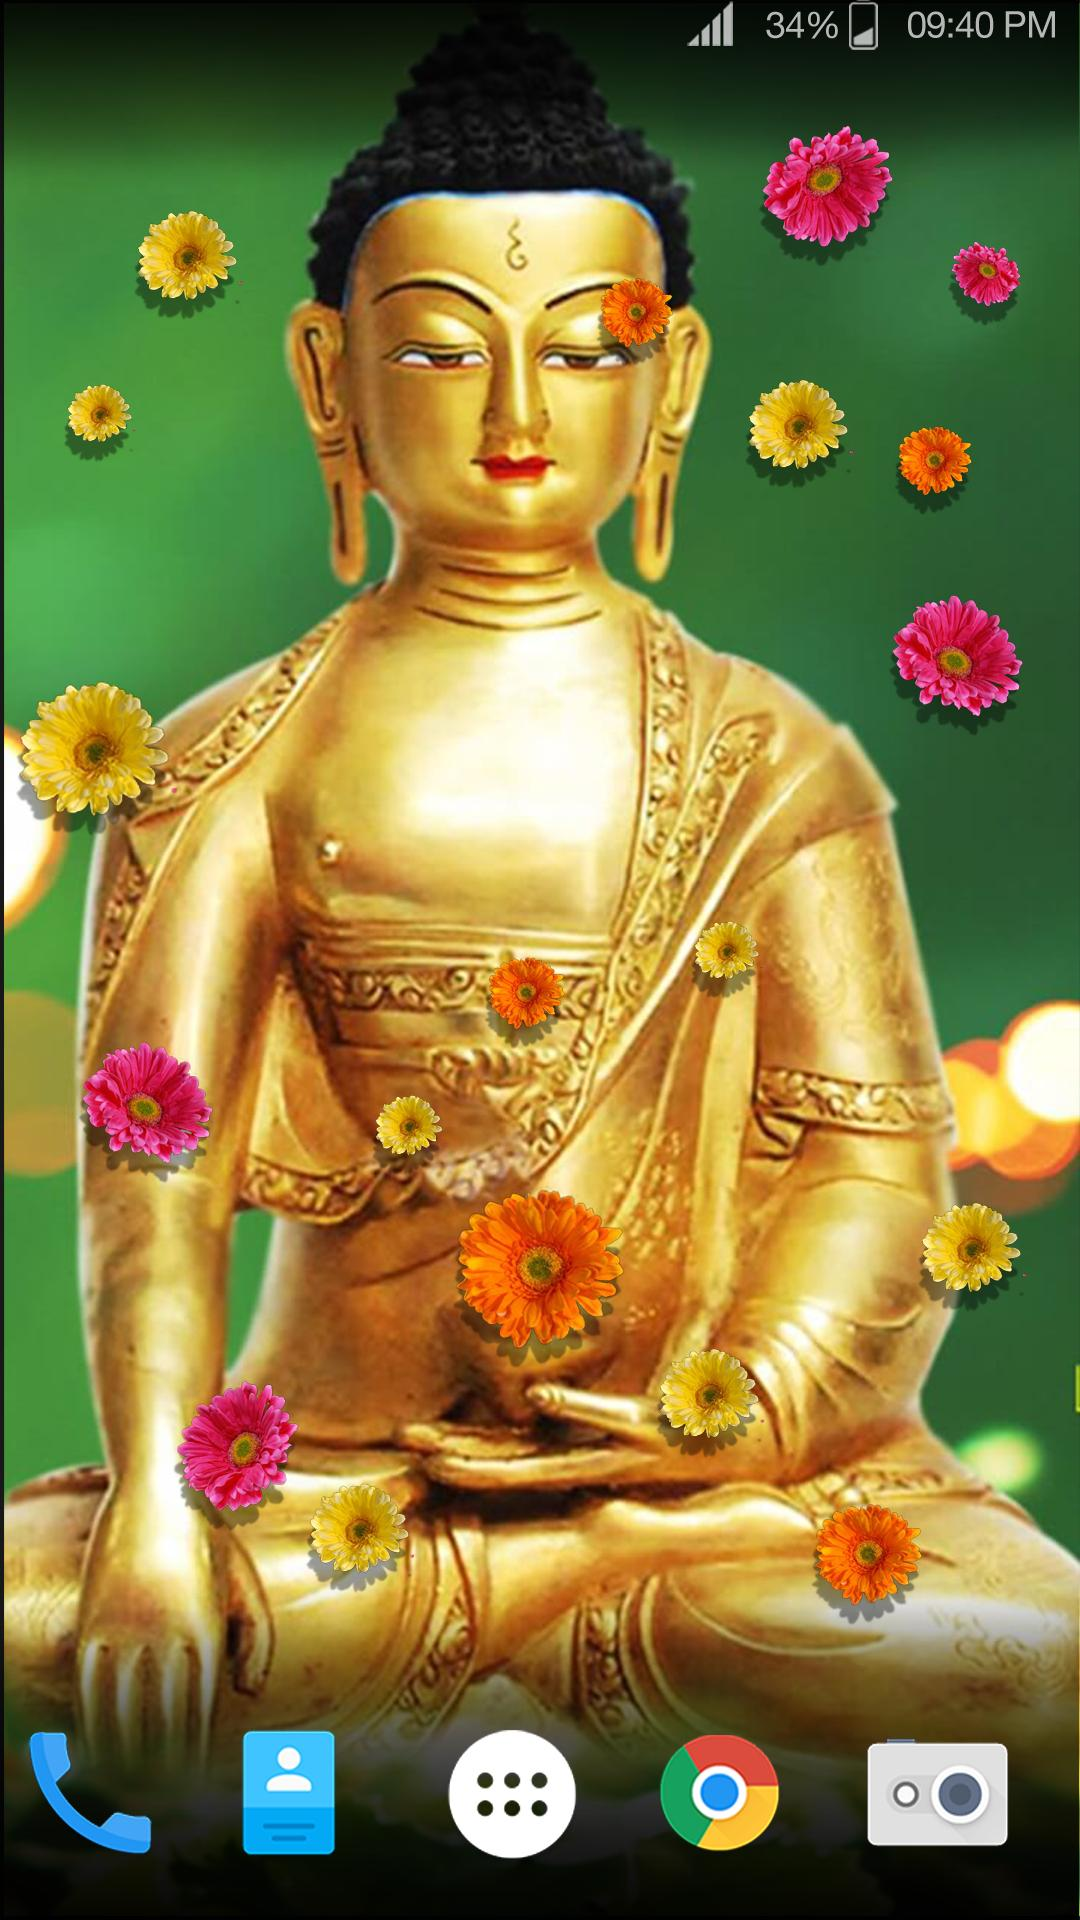 Hd Lord Buddha Live Wallpaper For Android Apk Download